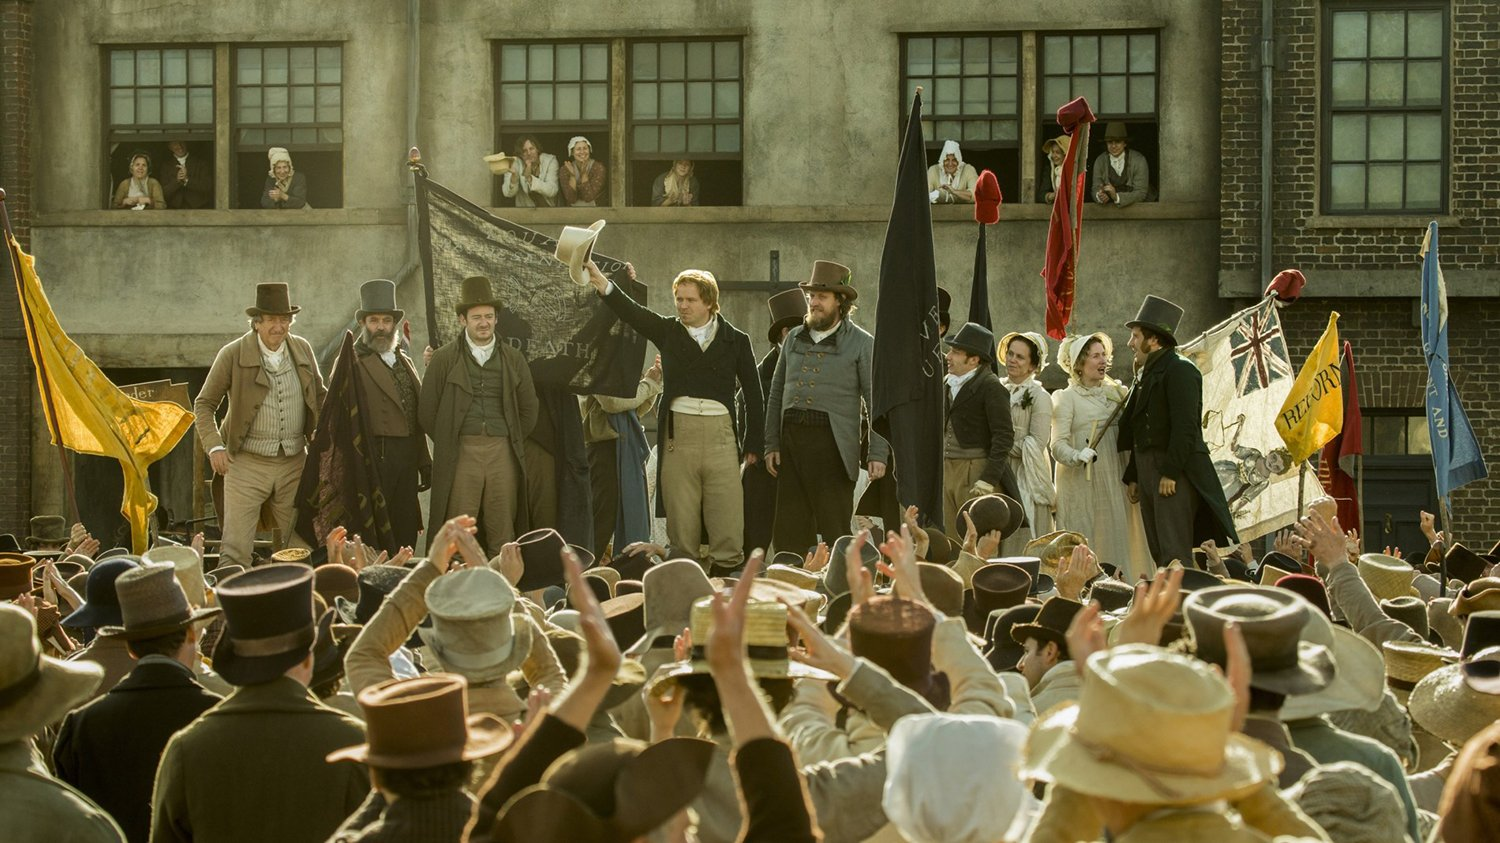 film still from peterloo